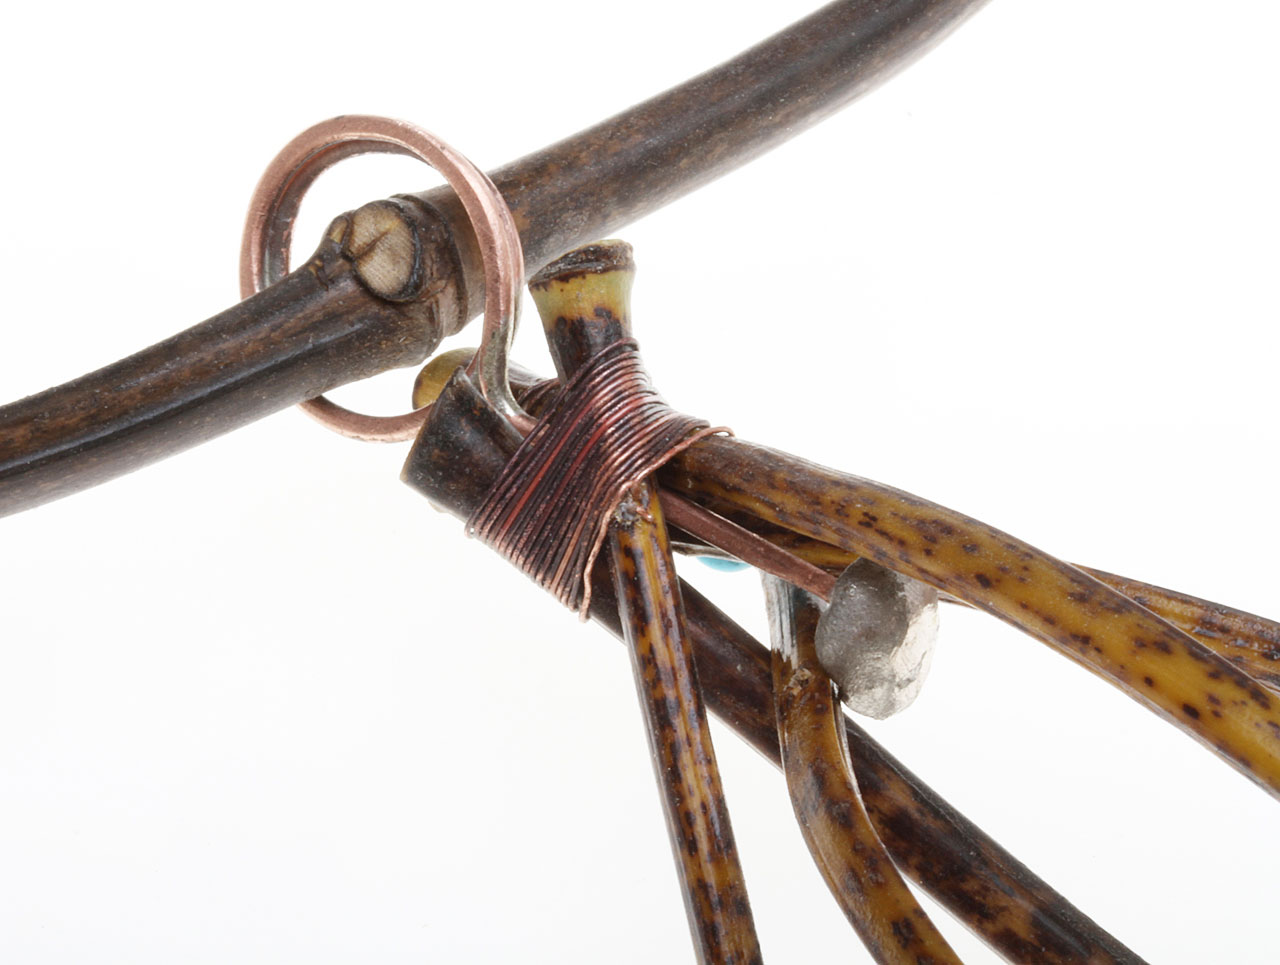 DETAIL OF COPPER LOOP AND WIRE WITH LARGE KNOB, which is trapped by the bundled bamboo culms when it is wire-wrapped with thin, annealed 26 guage copper wire, used on all these bamboo jewelry.